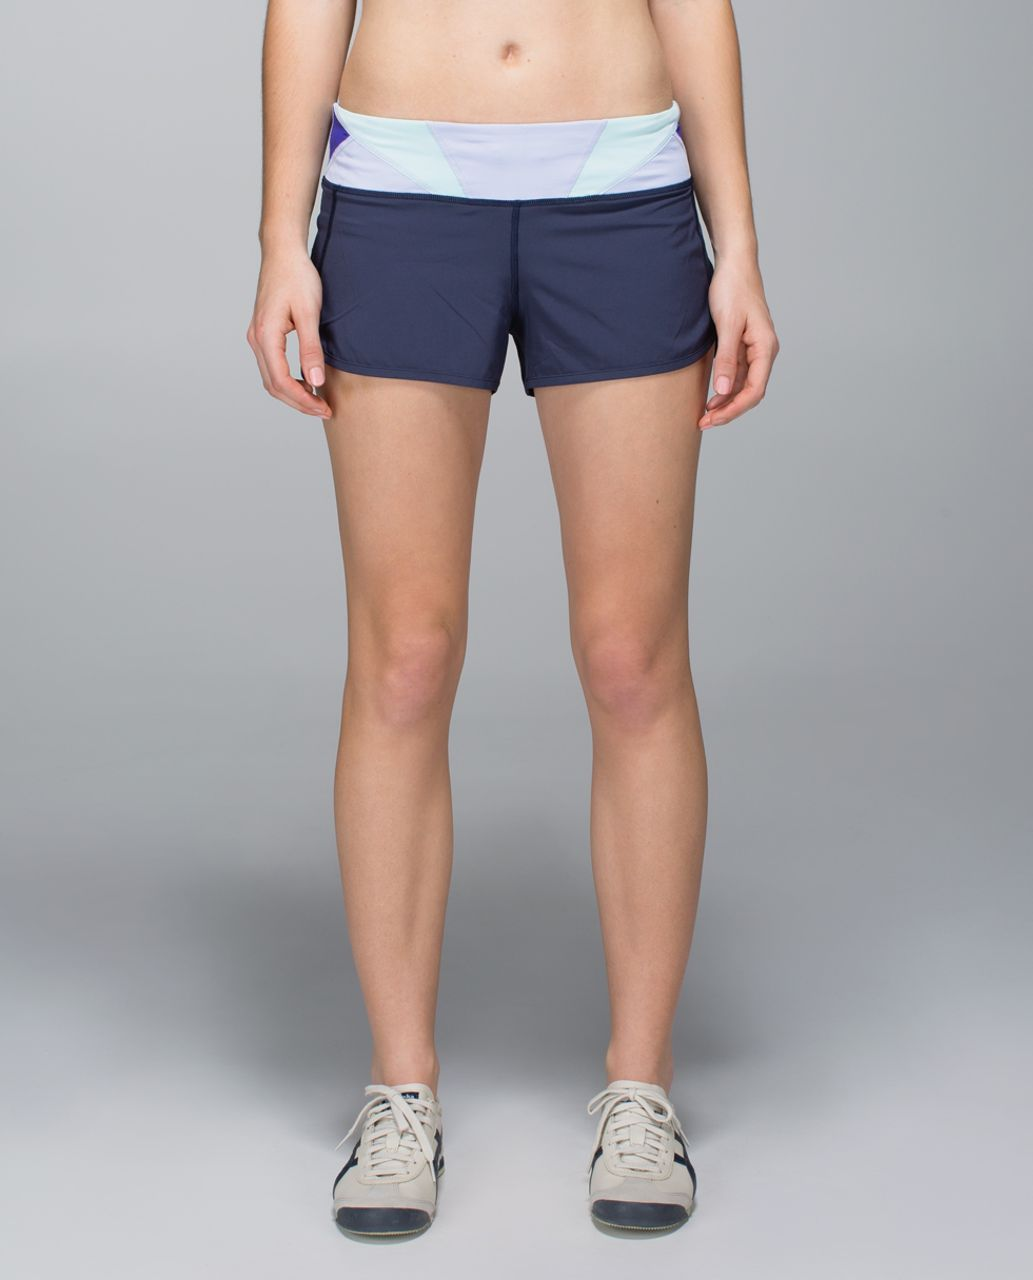 Lululemon Run:  Speed Short *4-way Stretch - Cadet Blue / Su14 Quilt 28